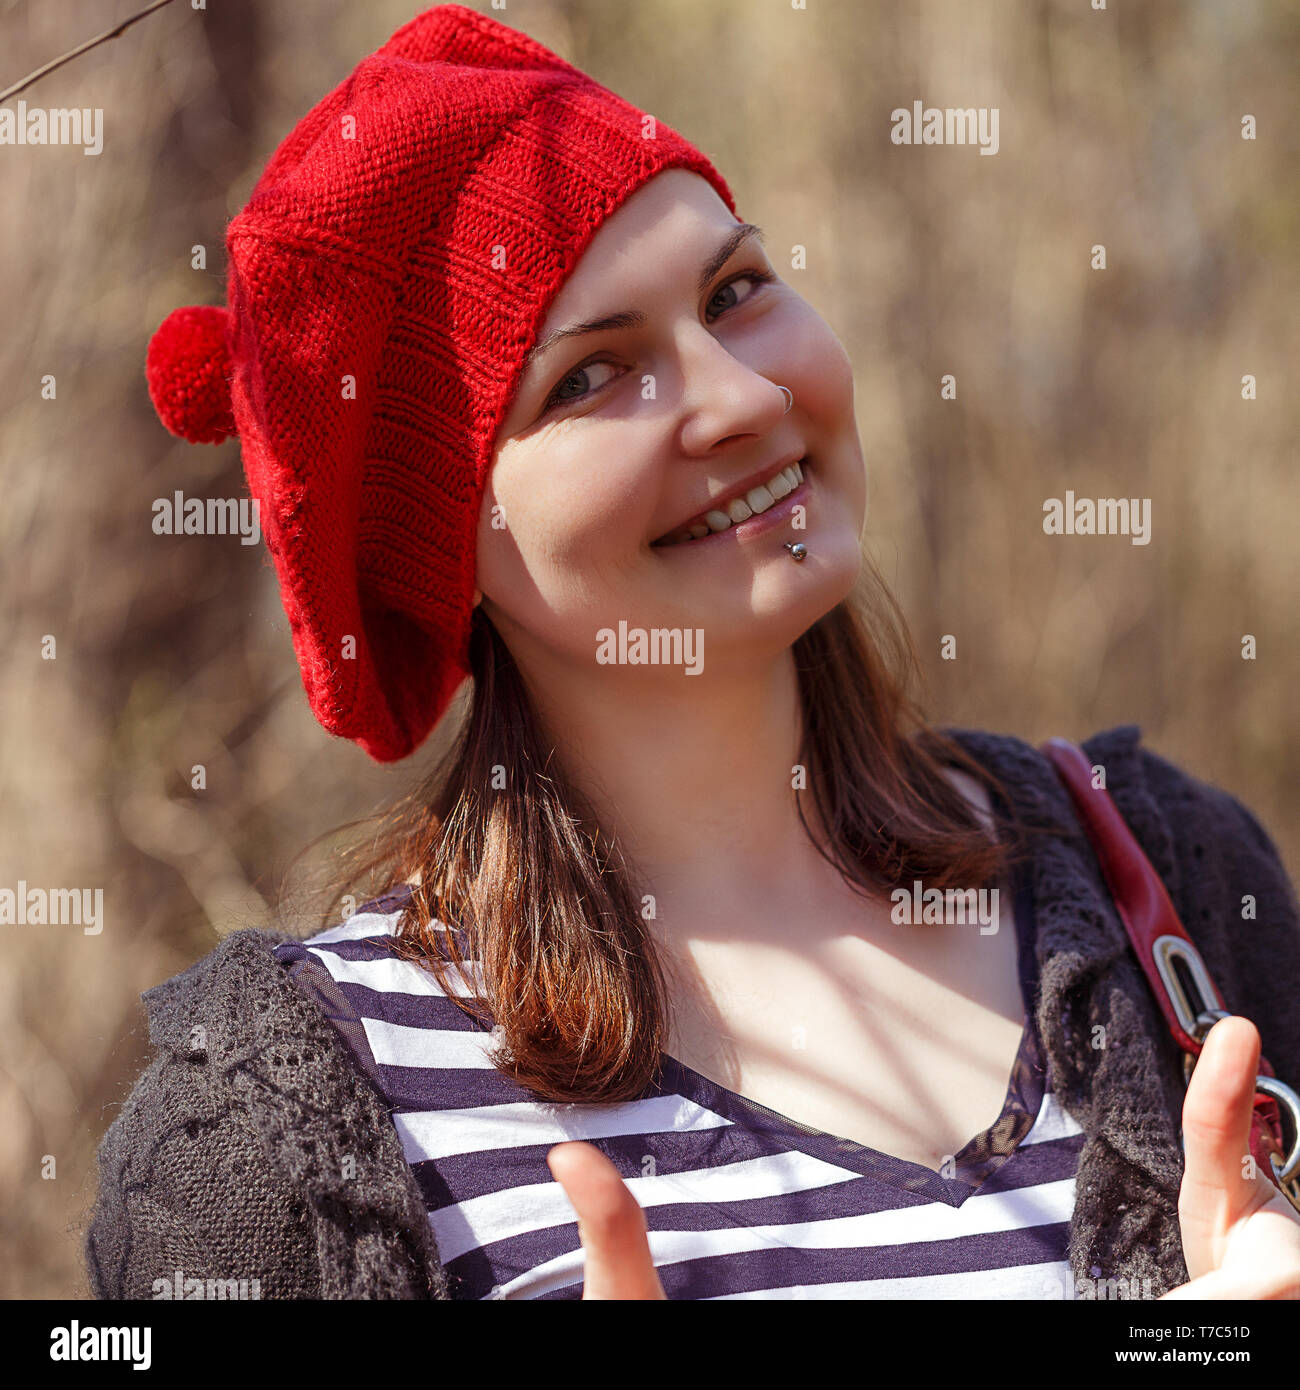 a2948bb1a0958 Outdoor close up portrait of young beautiful happy smiling girl wearing  french style red knitted beret